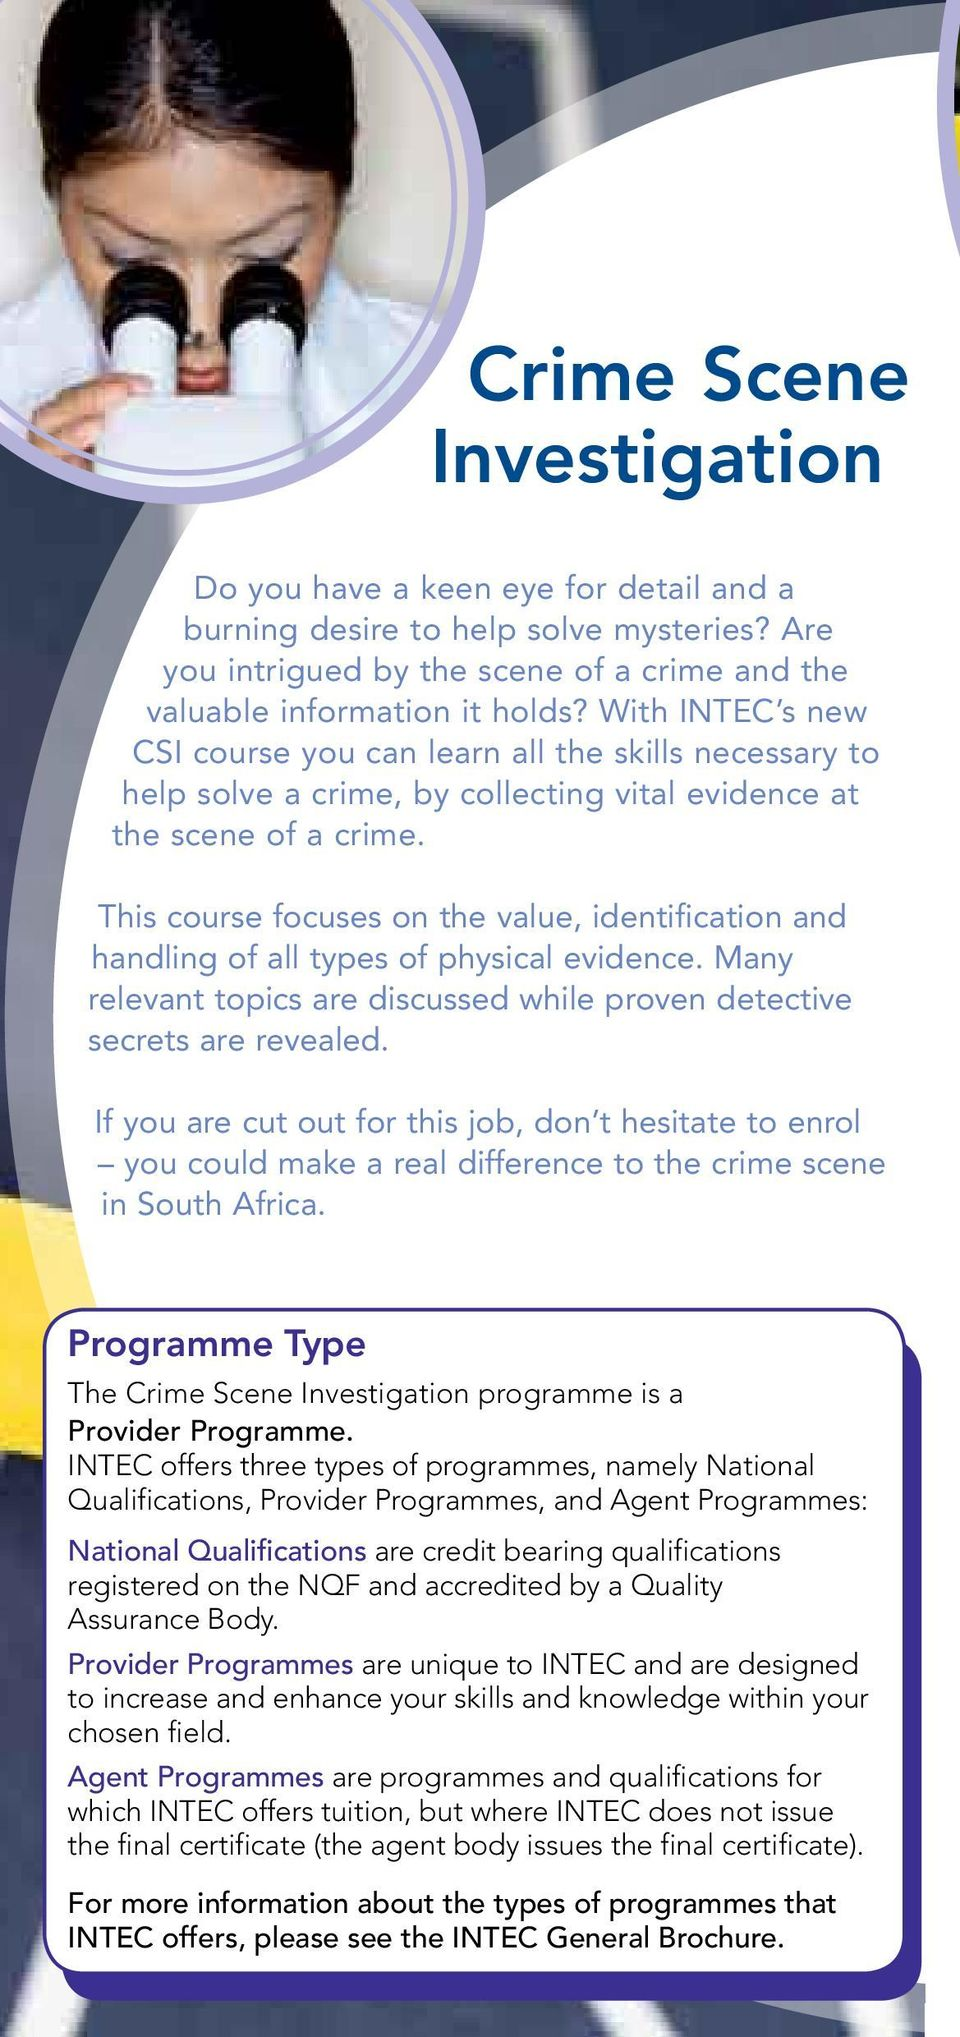 This course focuses on the value, identification and handling of all types of physical evidence. Many relevant topics are discussed while proven detective secrets are revealed.